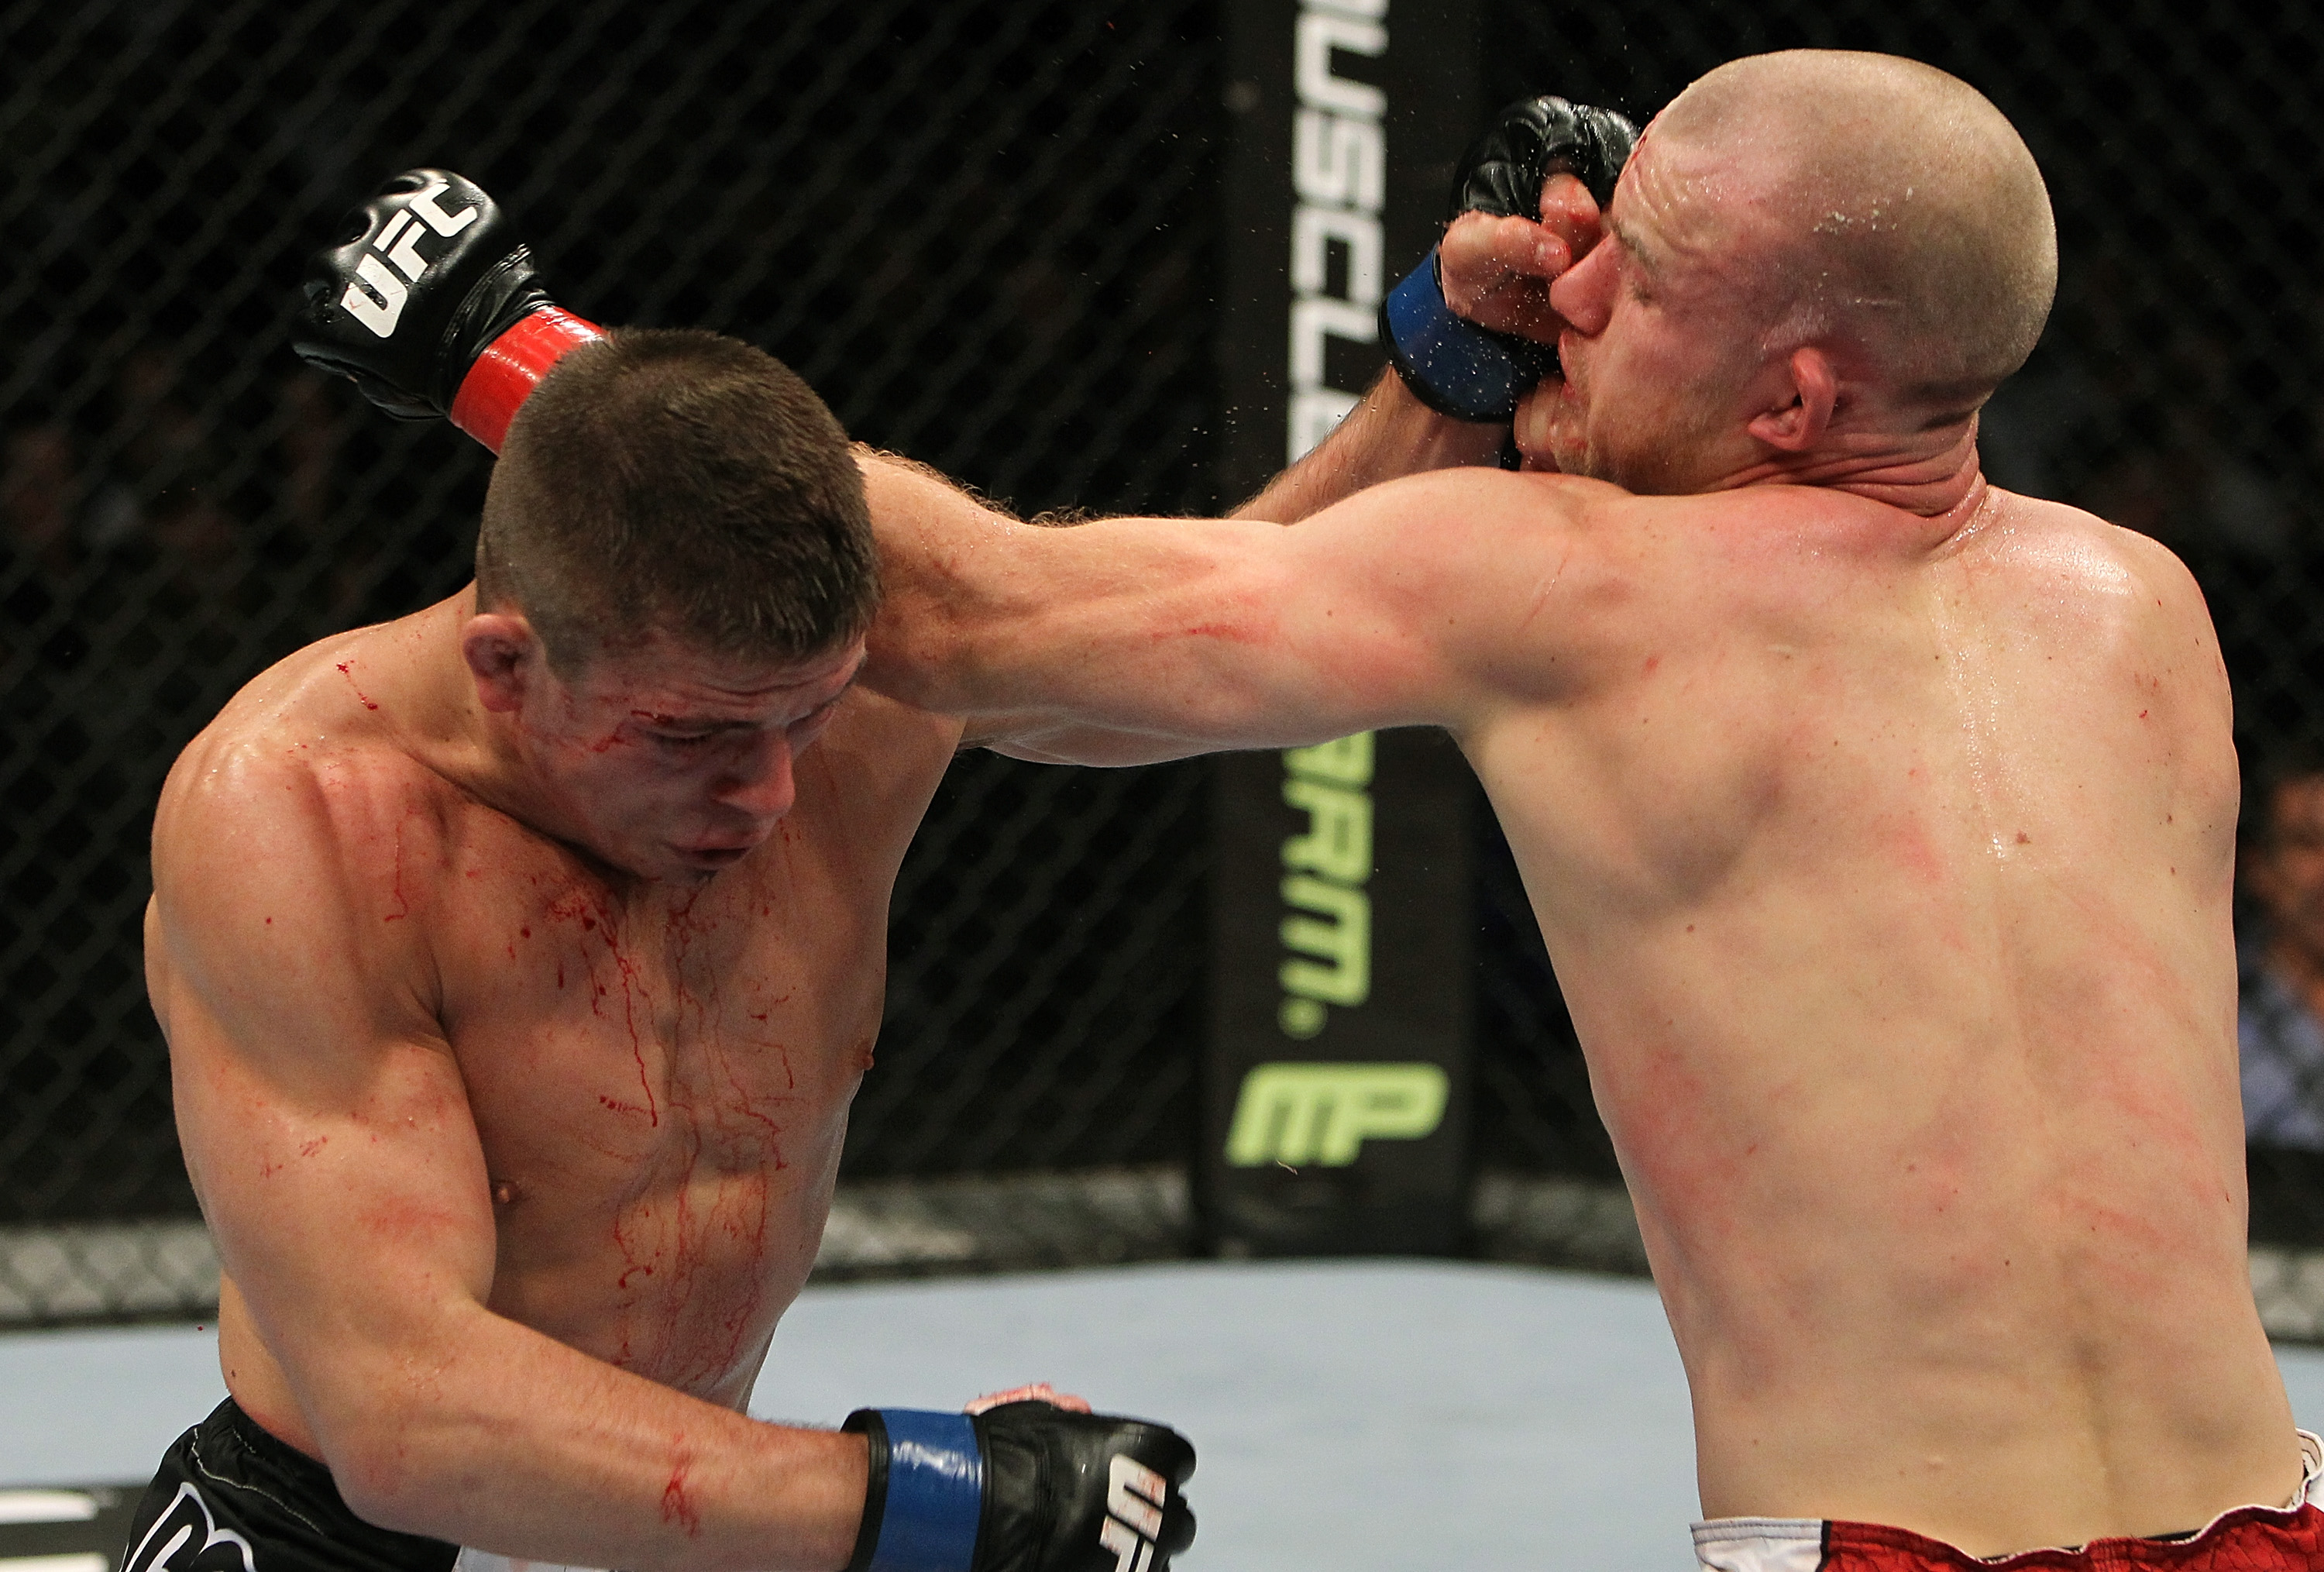 SAN JOSE, CA - NOVEMBER 19:  (R-L) Martin Kampmann and Rick Story exchange punches during an UFC Welterweight bout at the HP Pavillion on November 19, 2011 in San Jose, California.  (Photo by Josh Hedges/Zuffa LLC/Zuffa LLC via Getty Images)